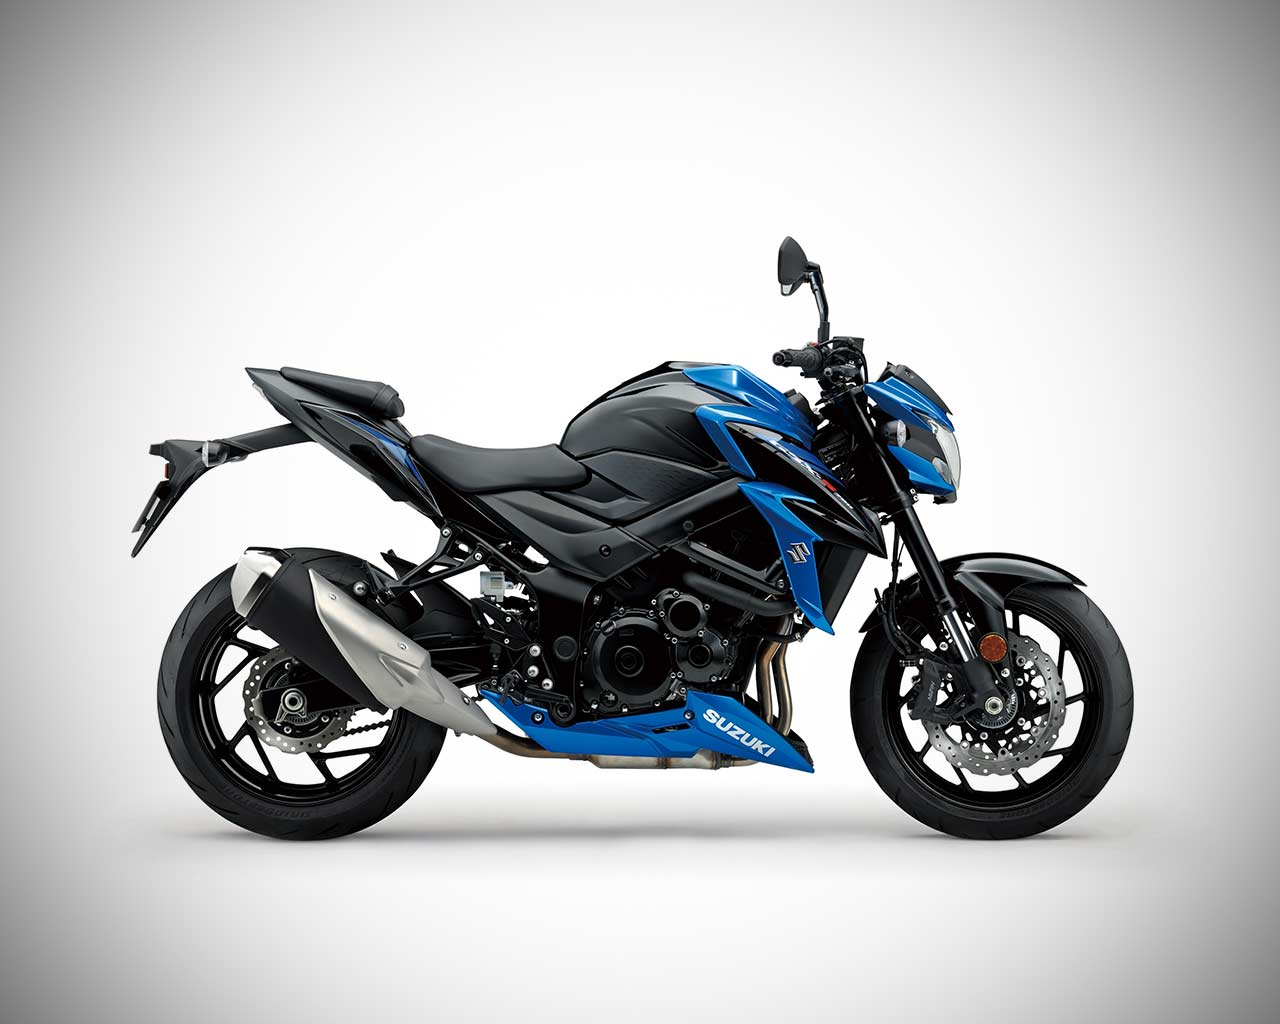 Suzuki GSX-S750 launched in India; Priced at INR 7.45 Lakh | AUTOBICS